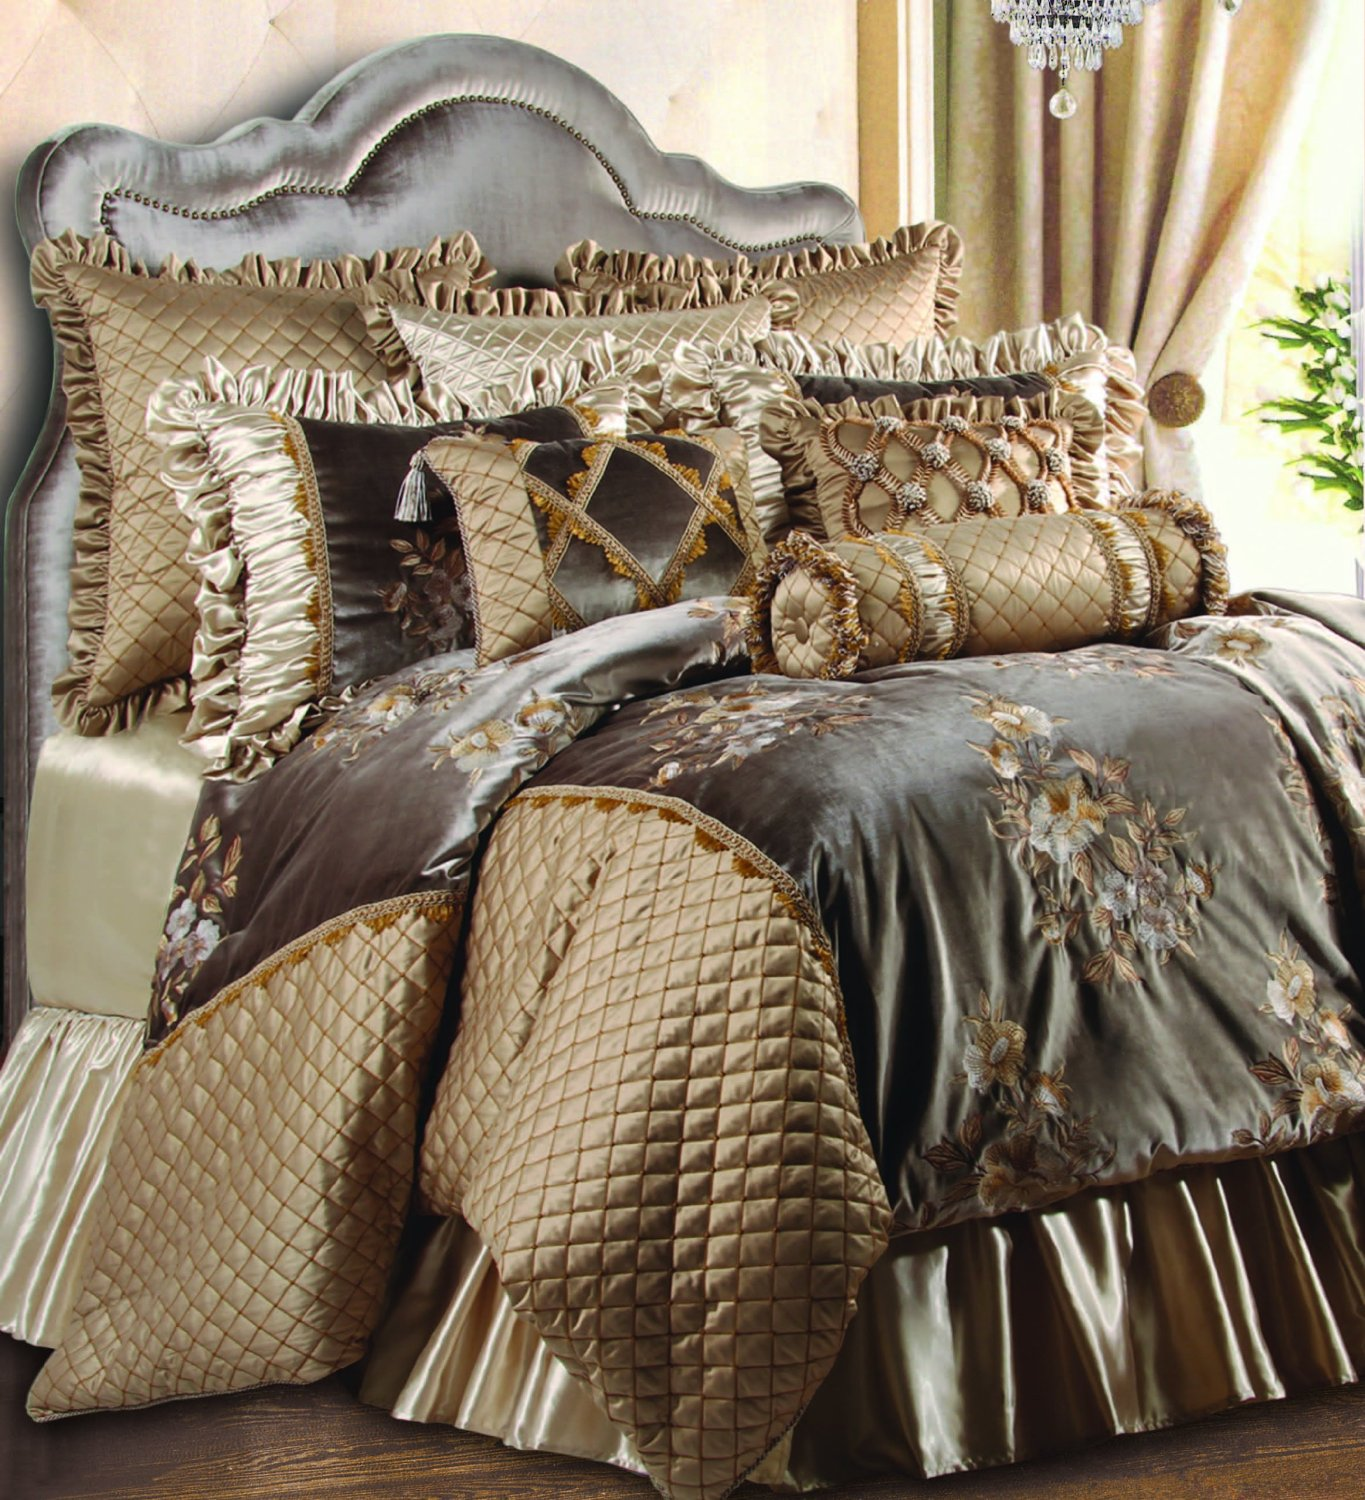 Luxury Comforter Sets | Pintuck Comforter | Gucci Bed Sheets